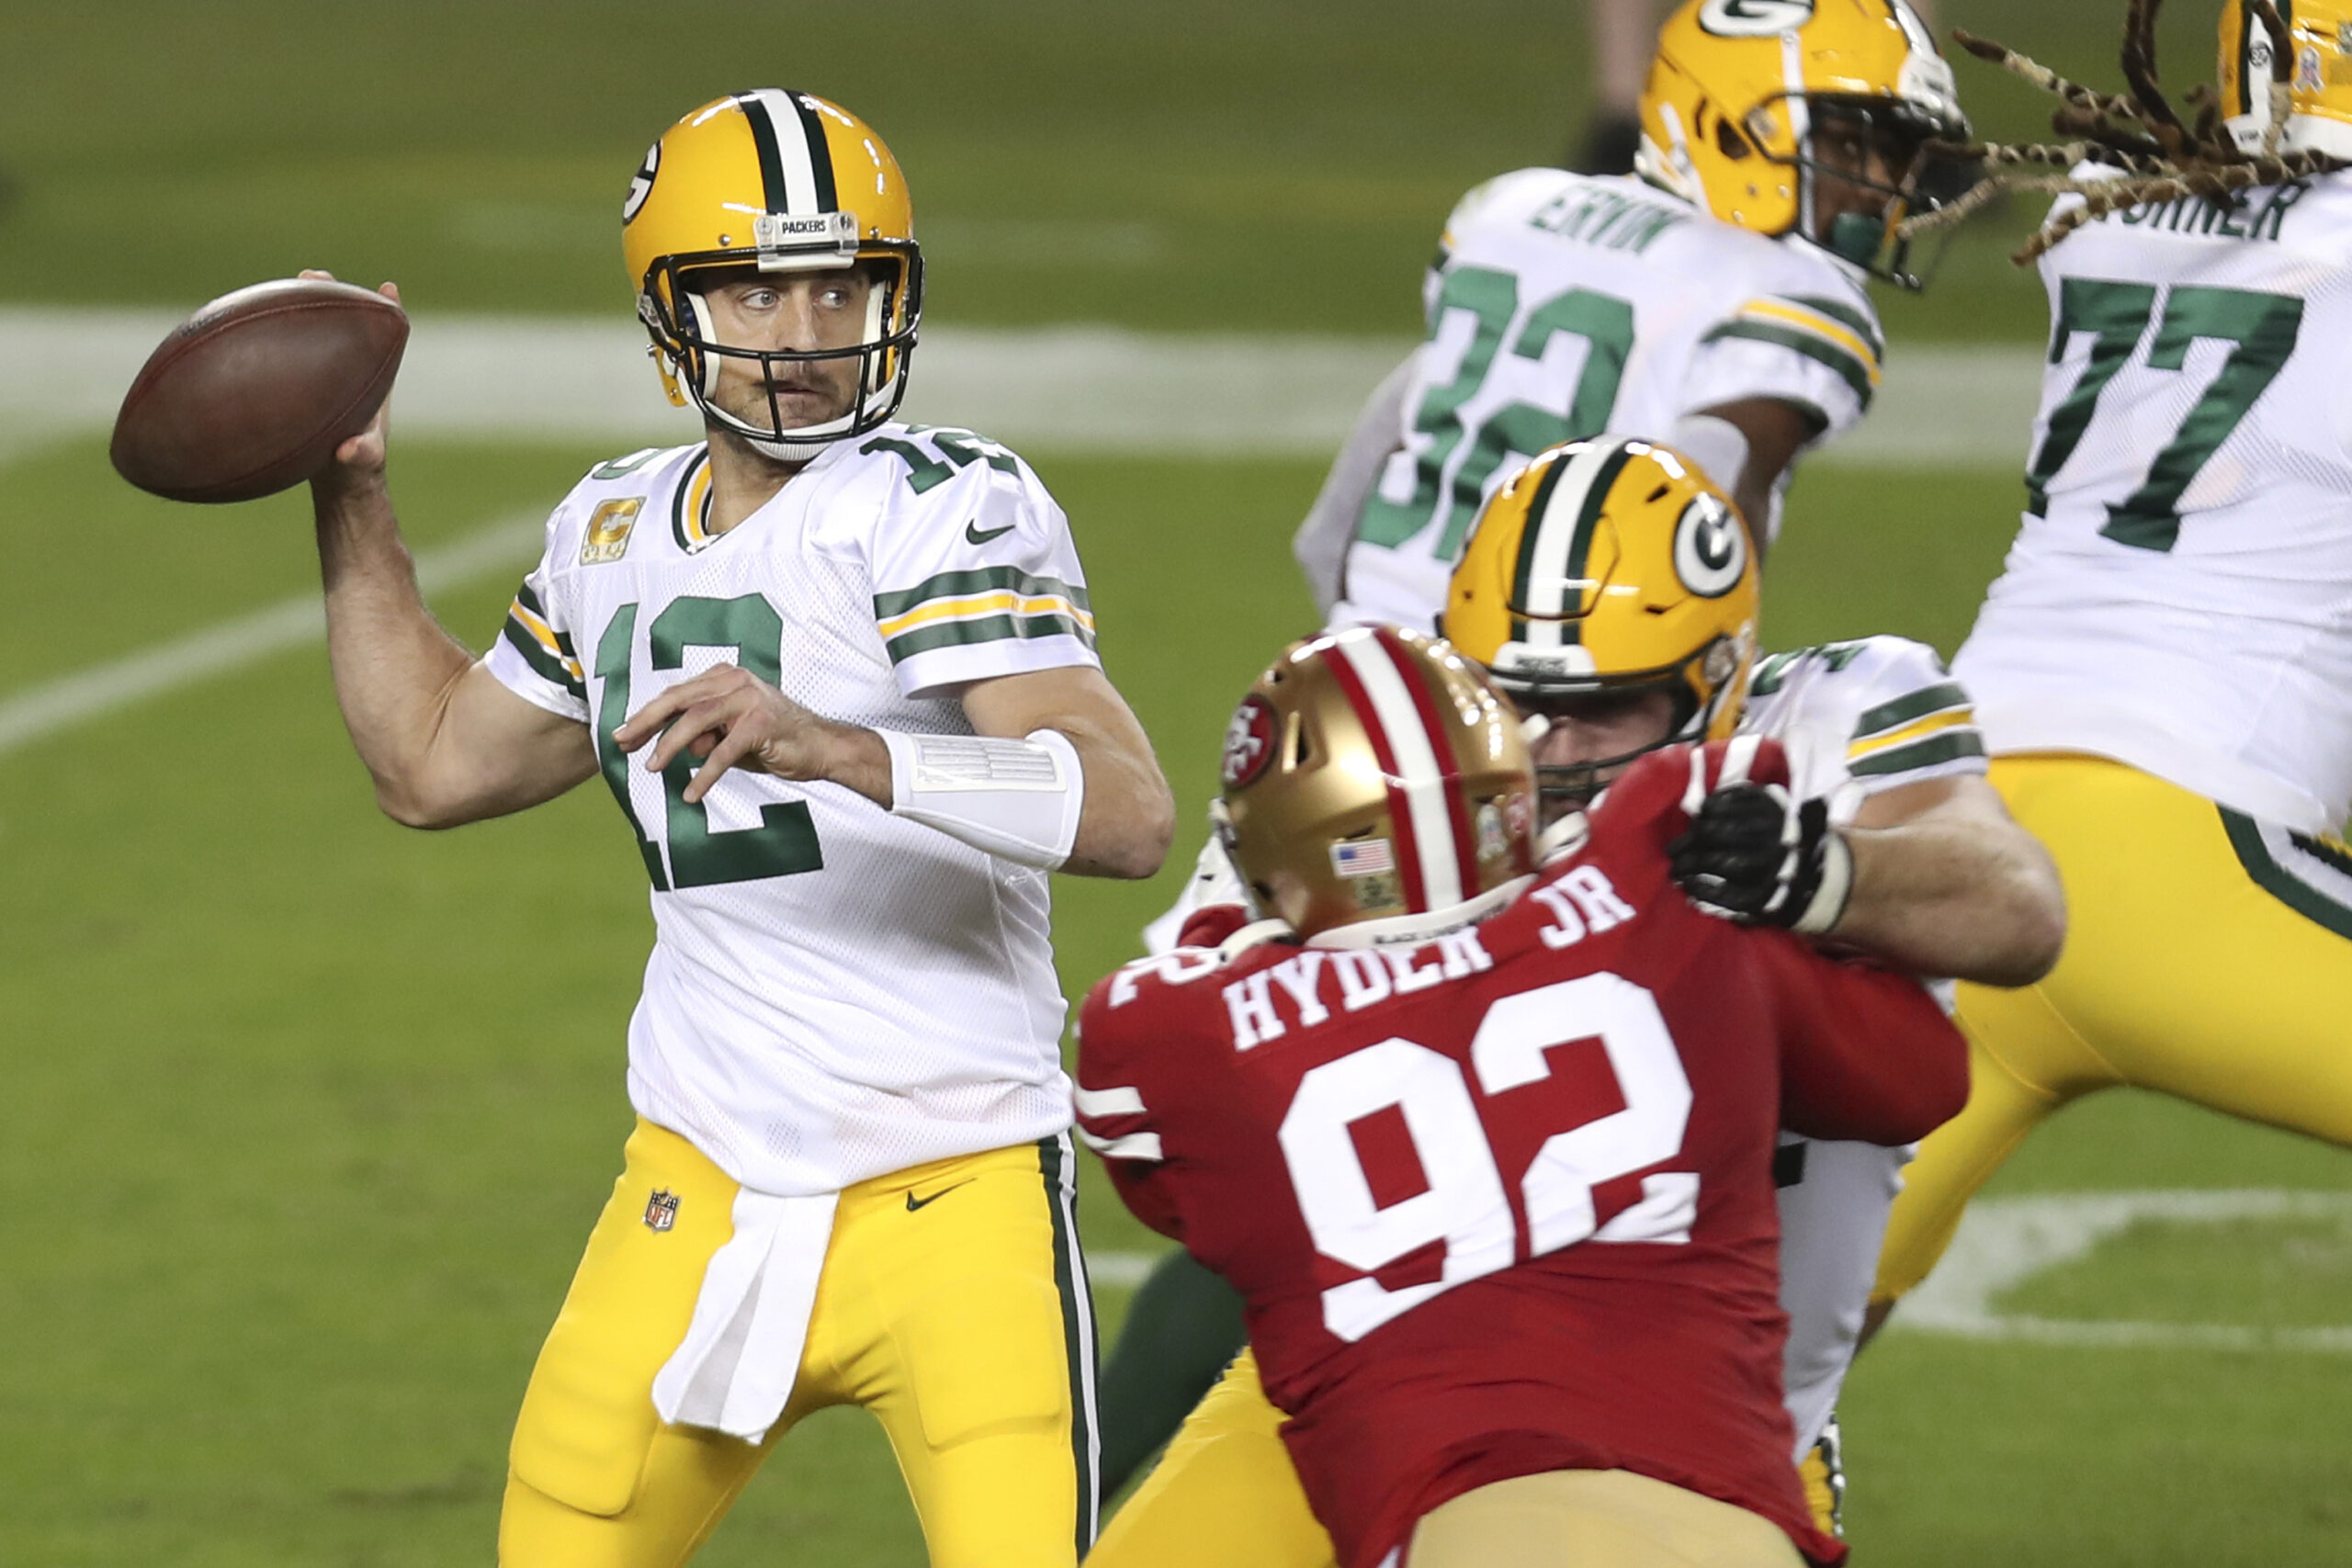 Game Preview: Week 3 Packers vs 49ers